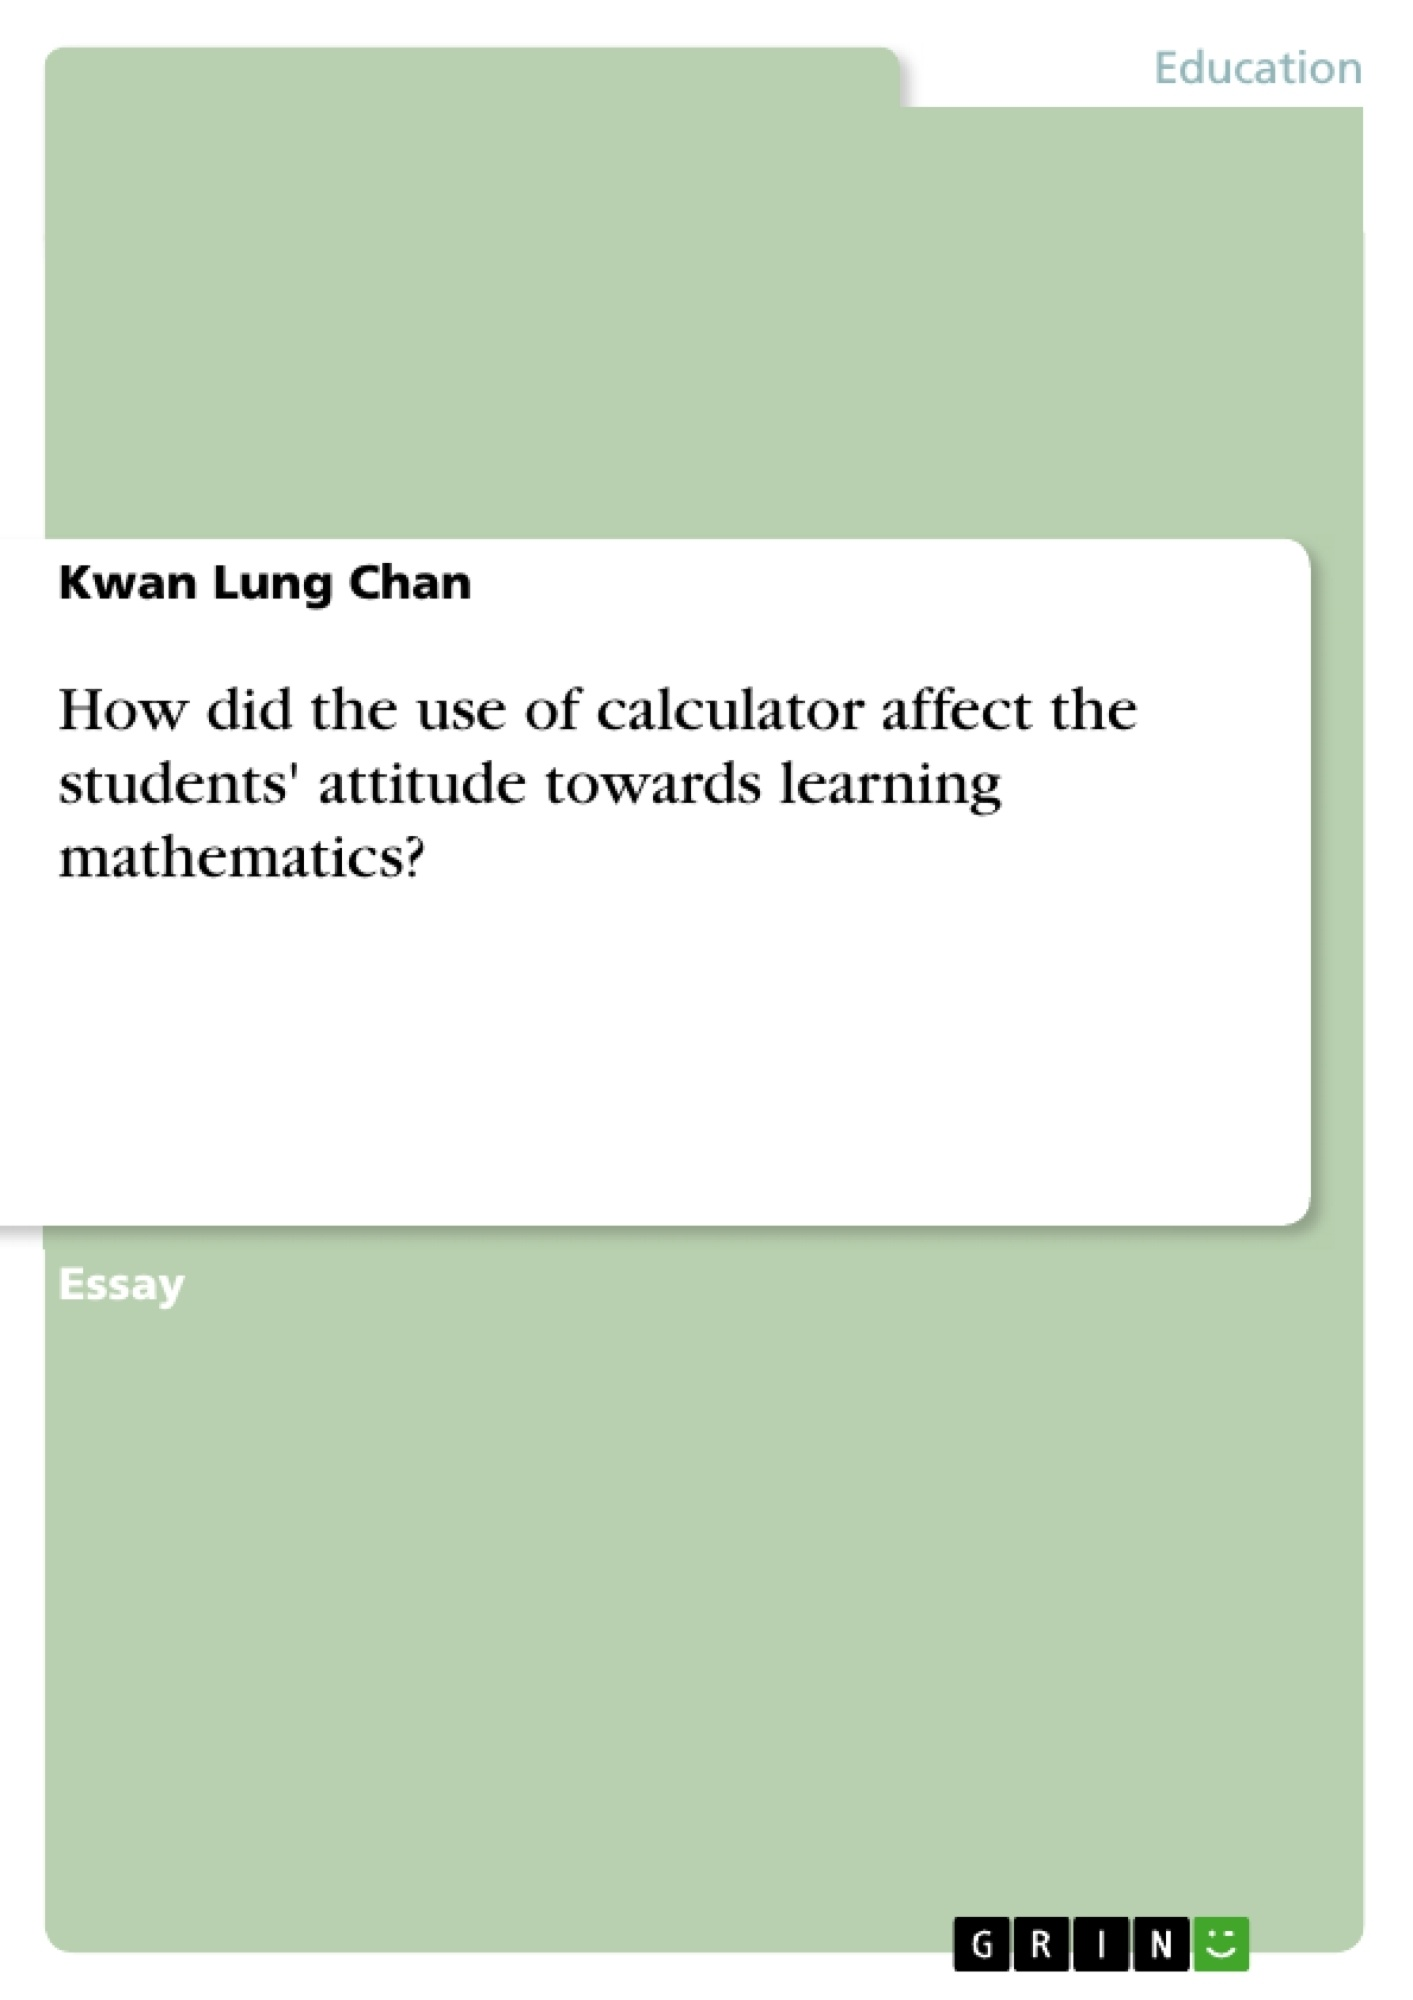 Title: How did the use of calculator affect the students' attitude towards learning mathematics?